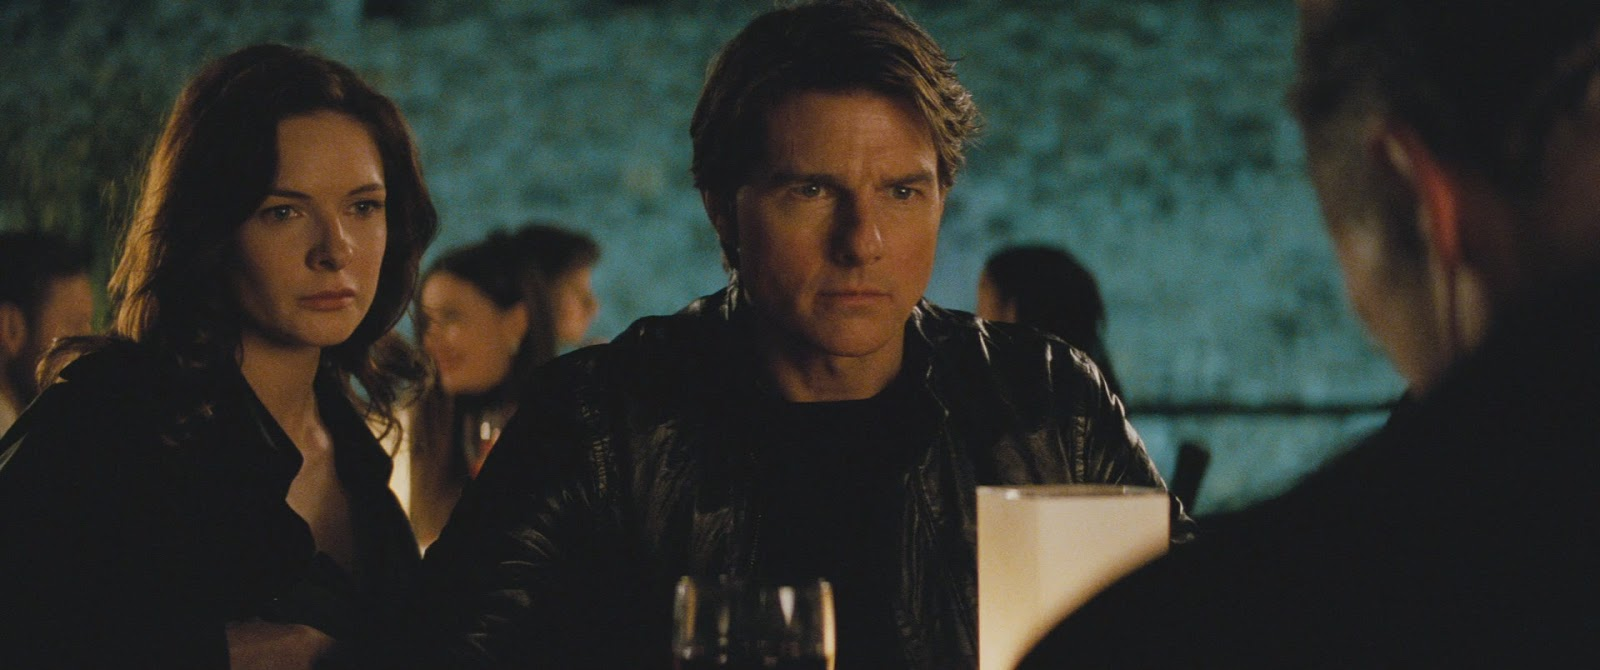 Watch Free Movies Online Mission Impossible Rogue Nation